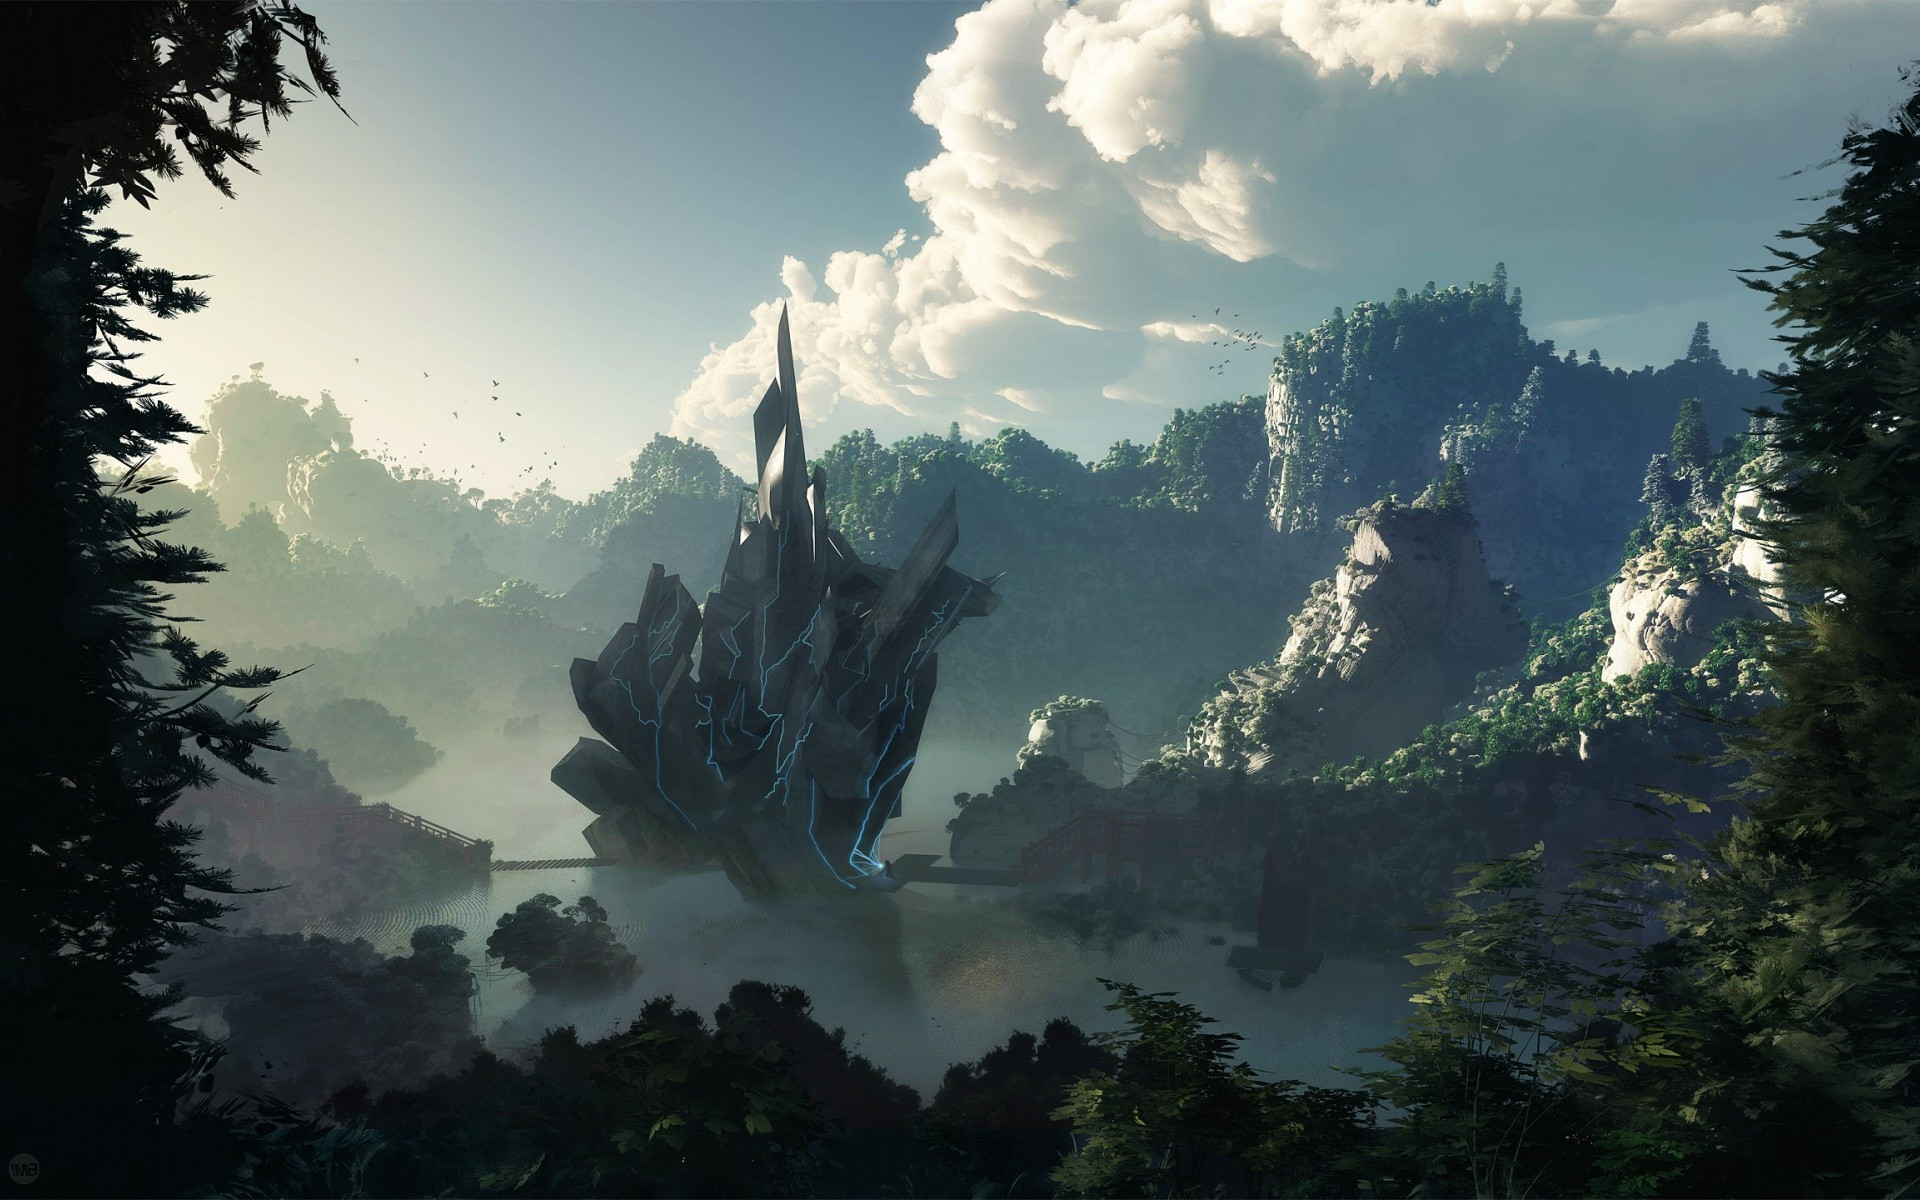 2560x1600 Final Fantasy Landscape Wallpapers Picture With High Resolution Wallpaper Px 66793 KB